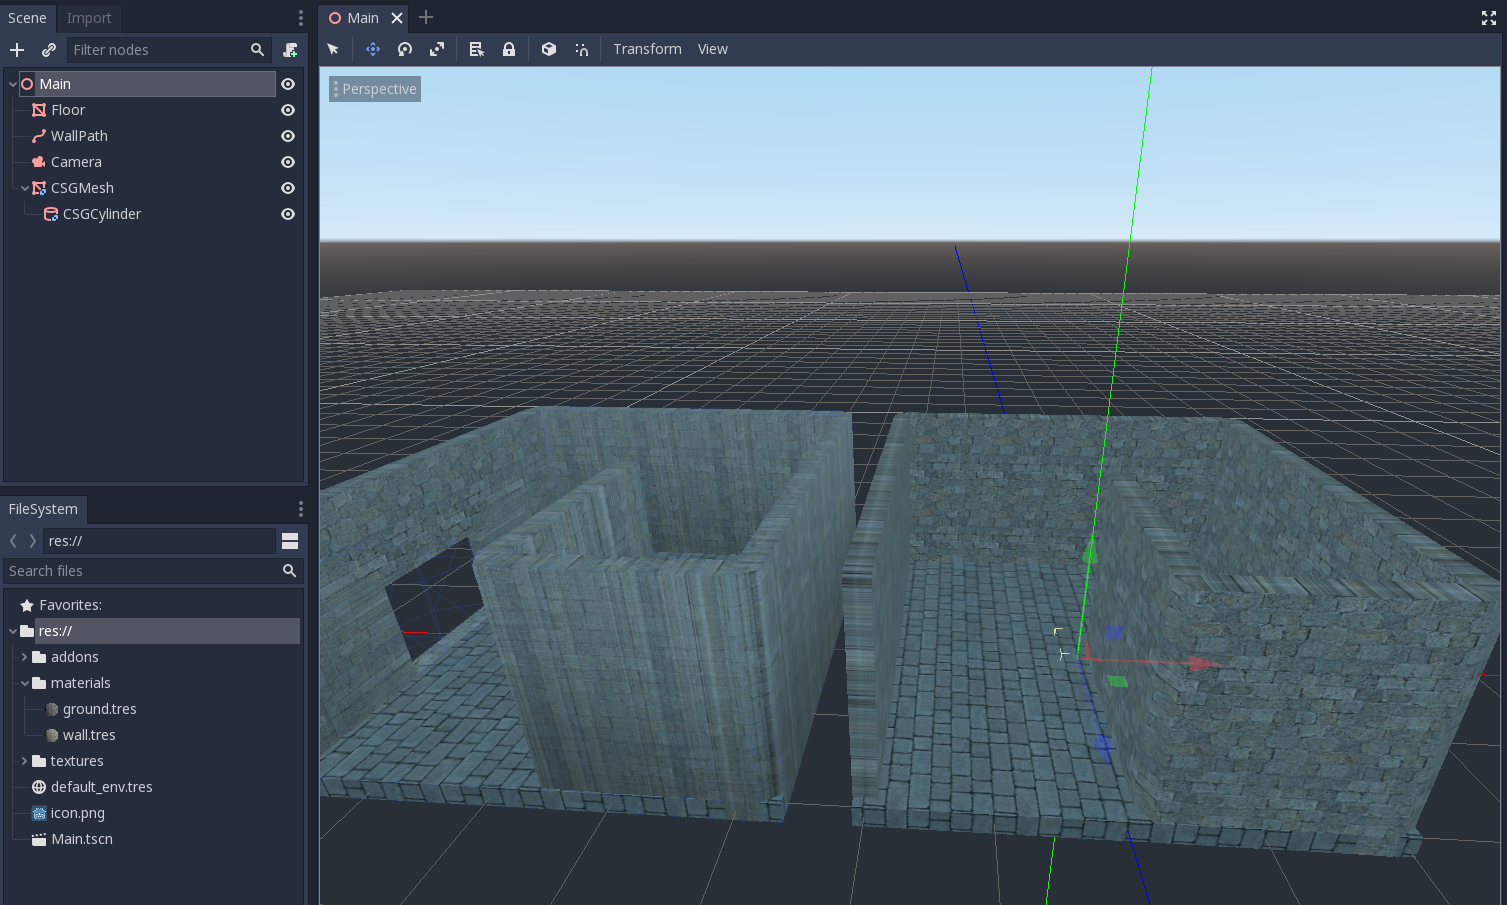 CSGMesh messing up normals · Issue #28661 · godotengine